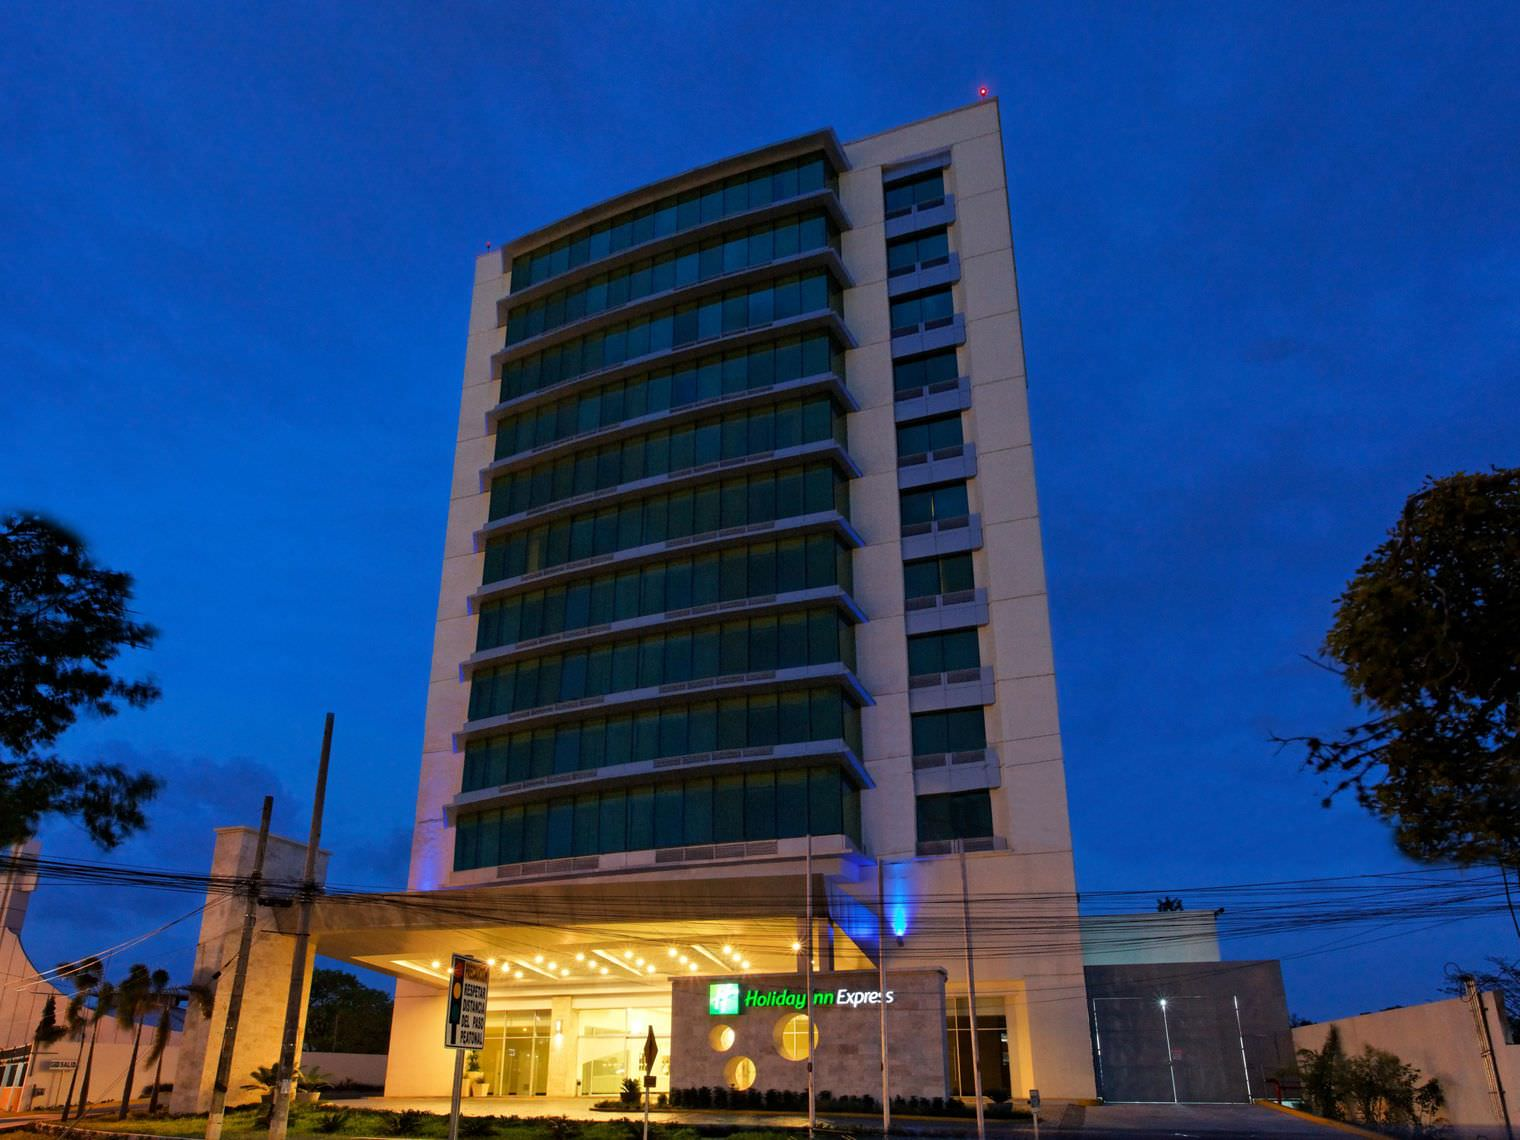 Best List of Luxury Hotels in San Pedro Sula, Honduras - Holiday Inn Express San Pedro Sula